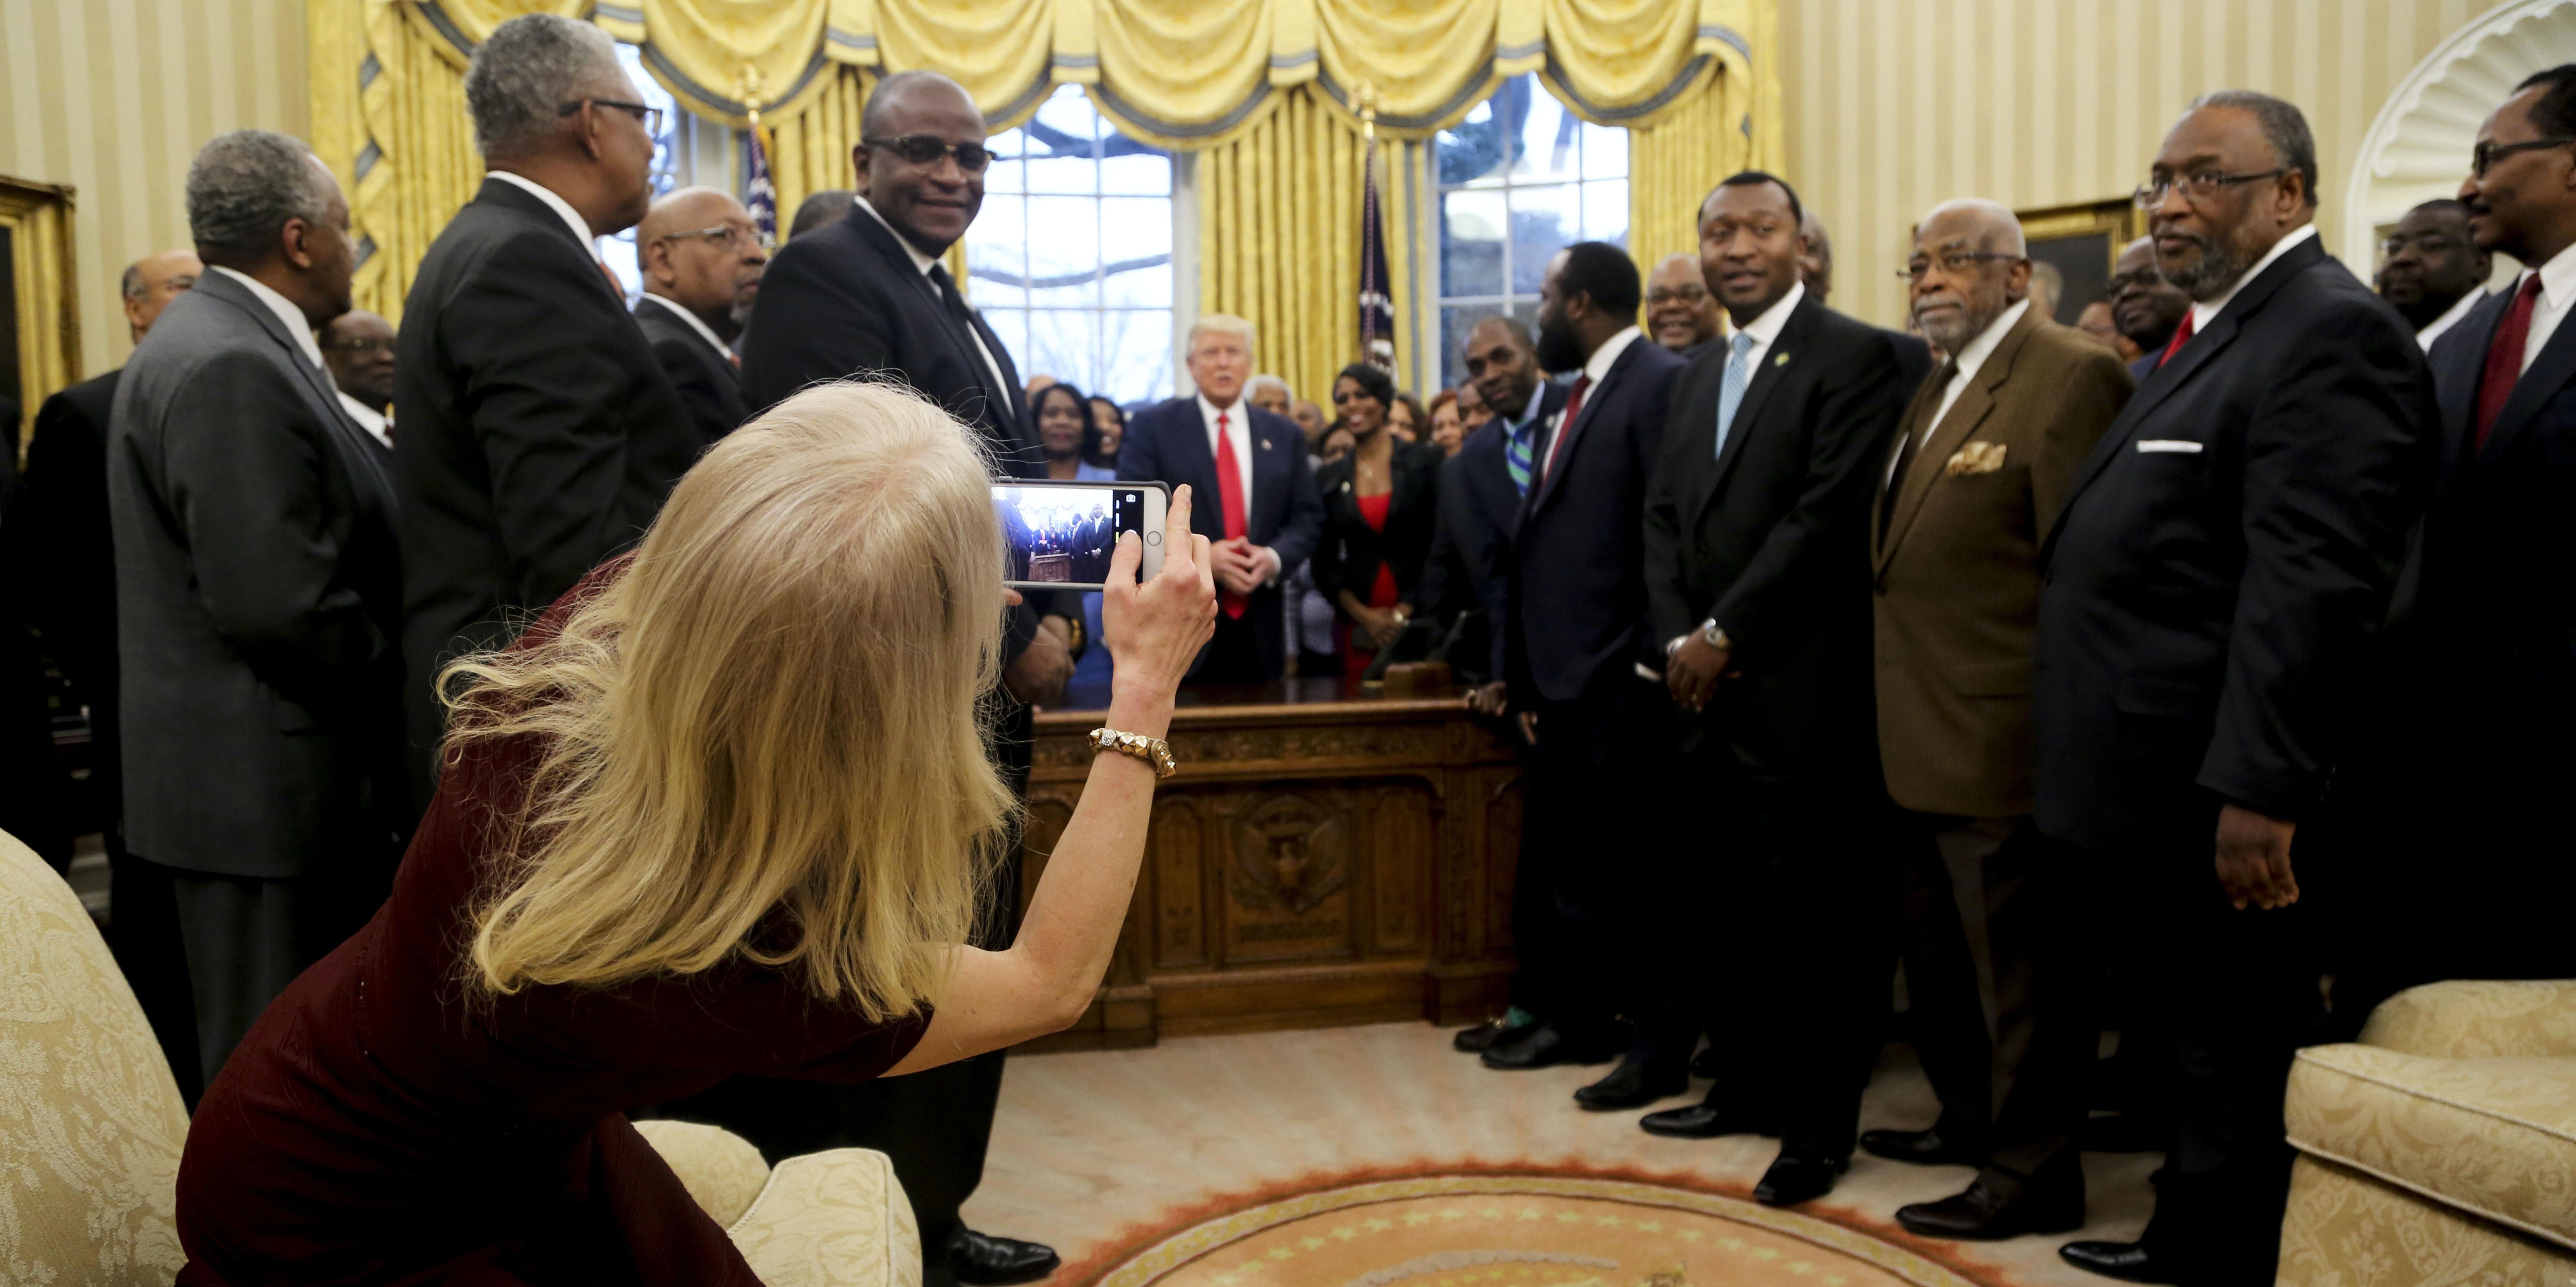 Kellyanne Conway's odd sitting position was memed quickly by the internet.